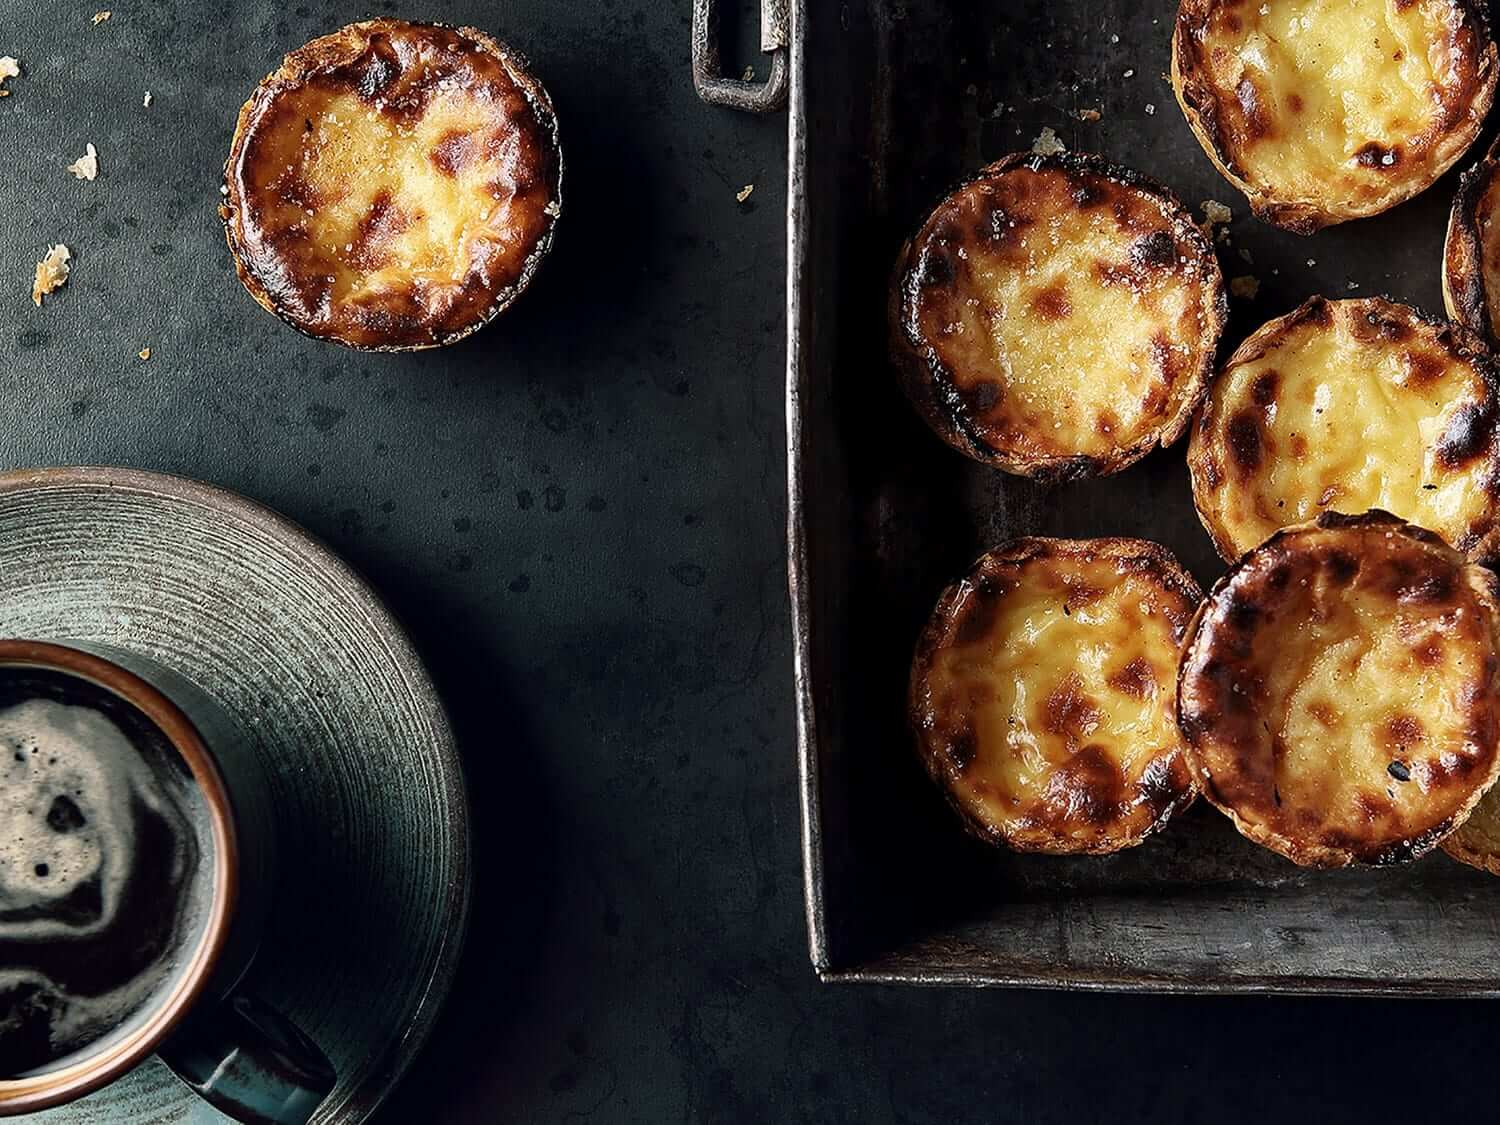 Mouth-watering Pastéis de Nata and a cup of coffee seen from above. Photo by Elsa Young.